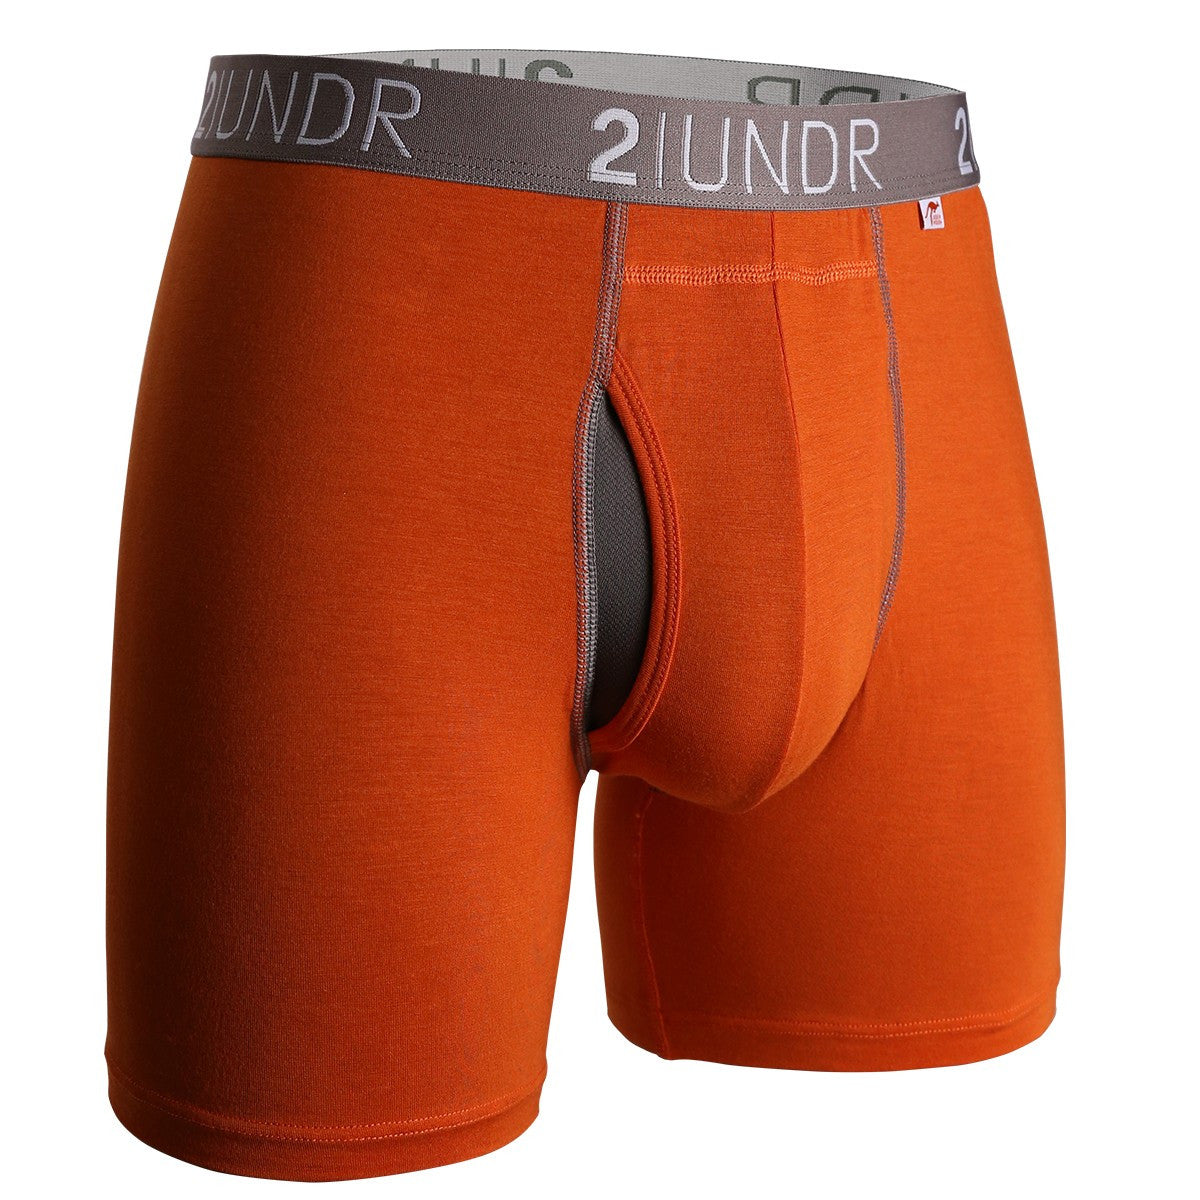 "Swing Shift 6"" Boxer Brief Orange Grey"